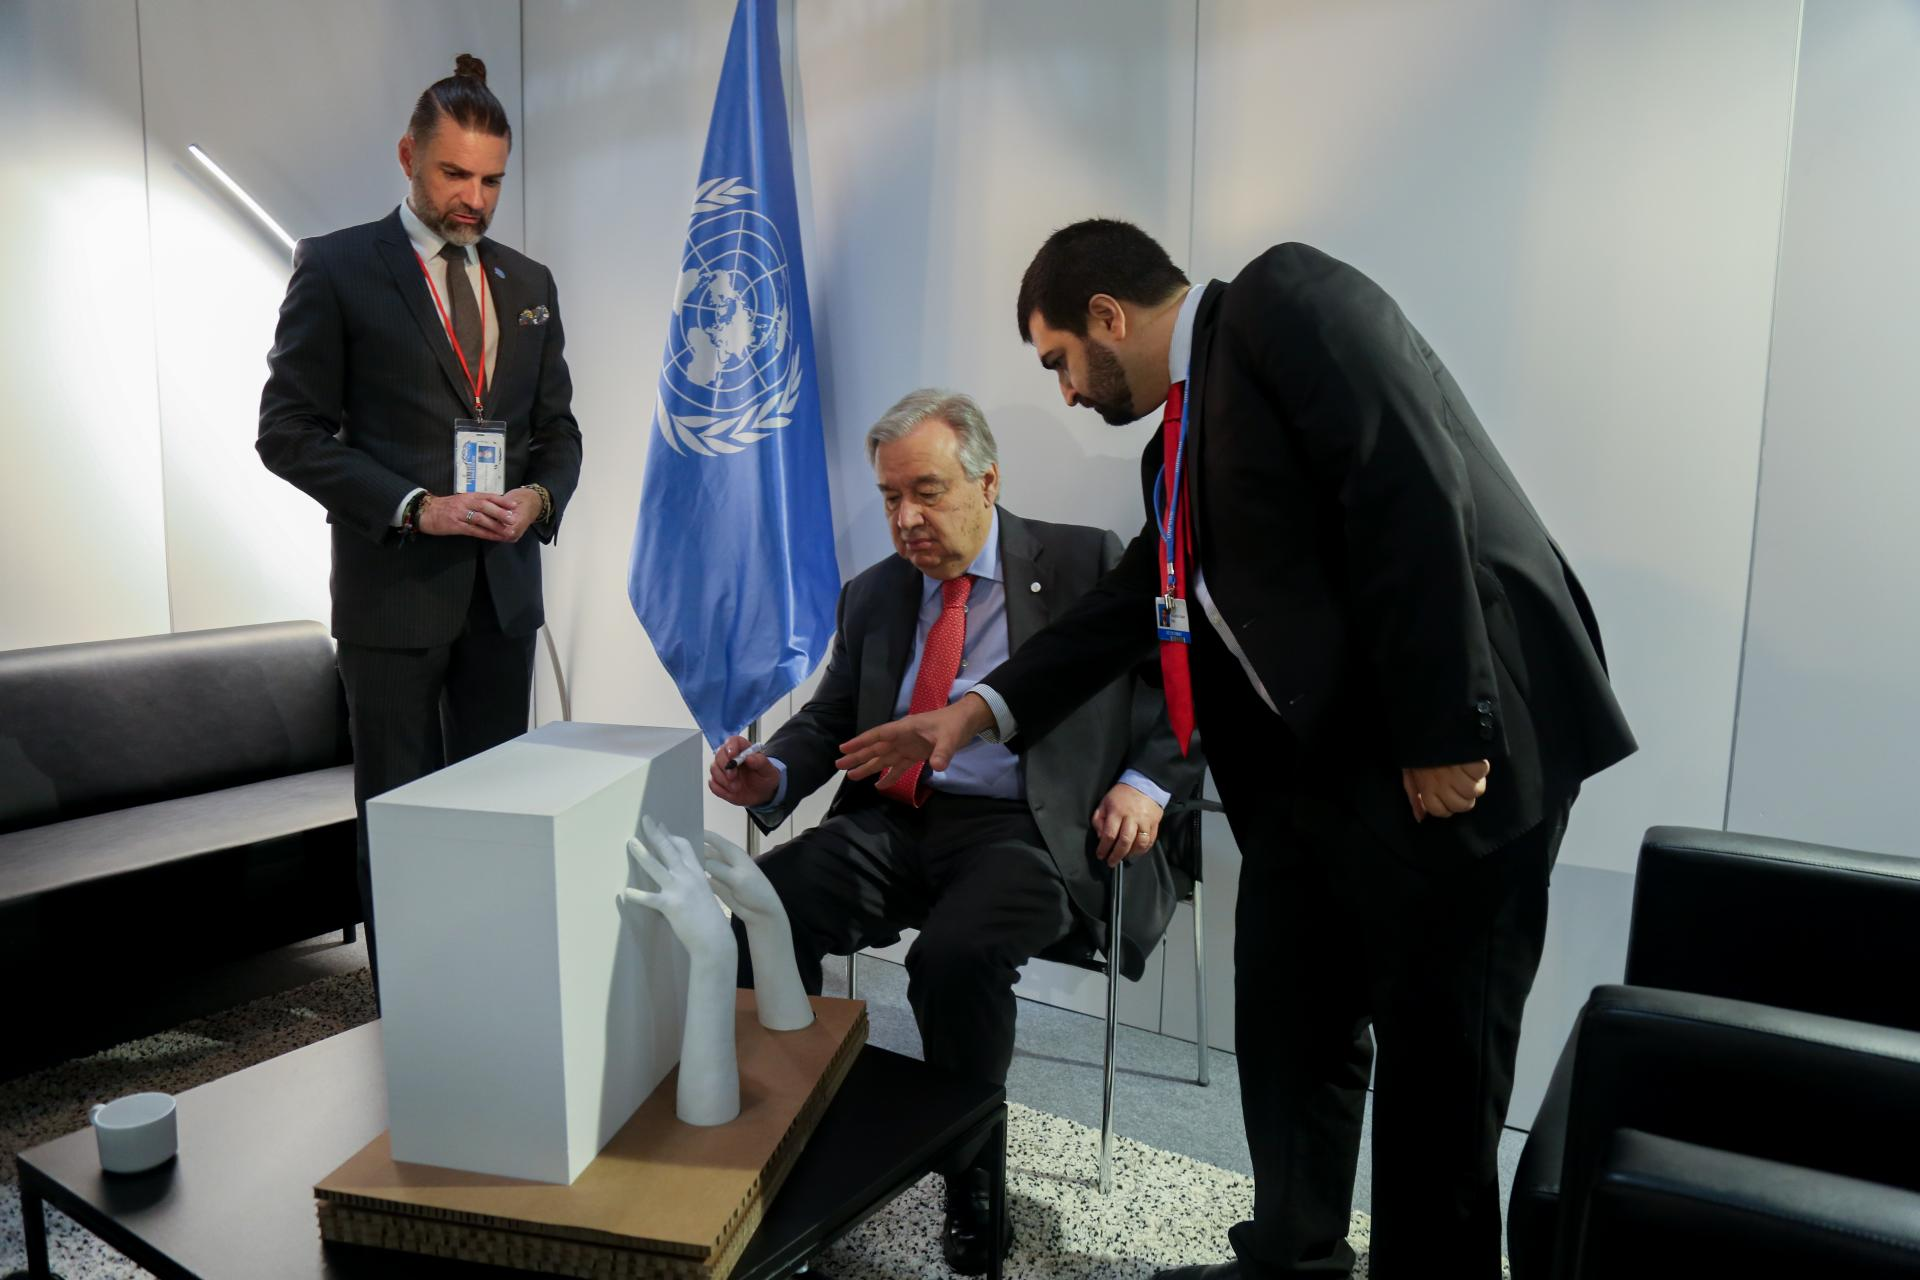 UN SG signs LQ sculpture